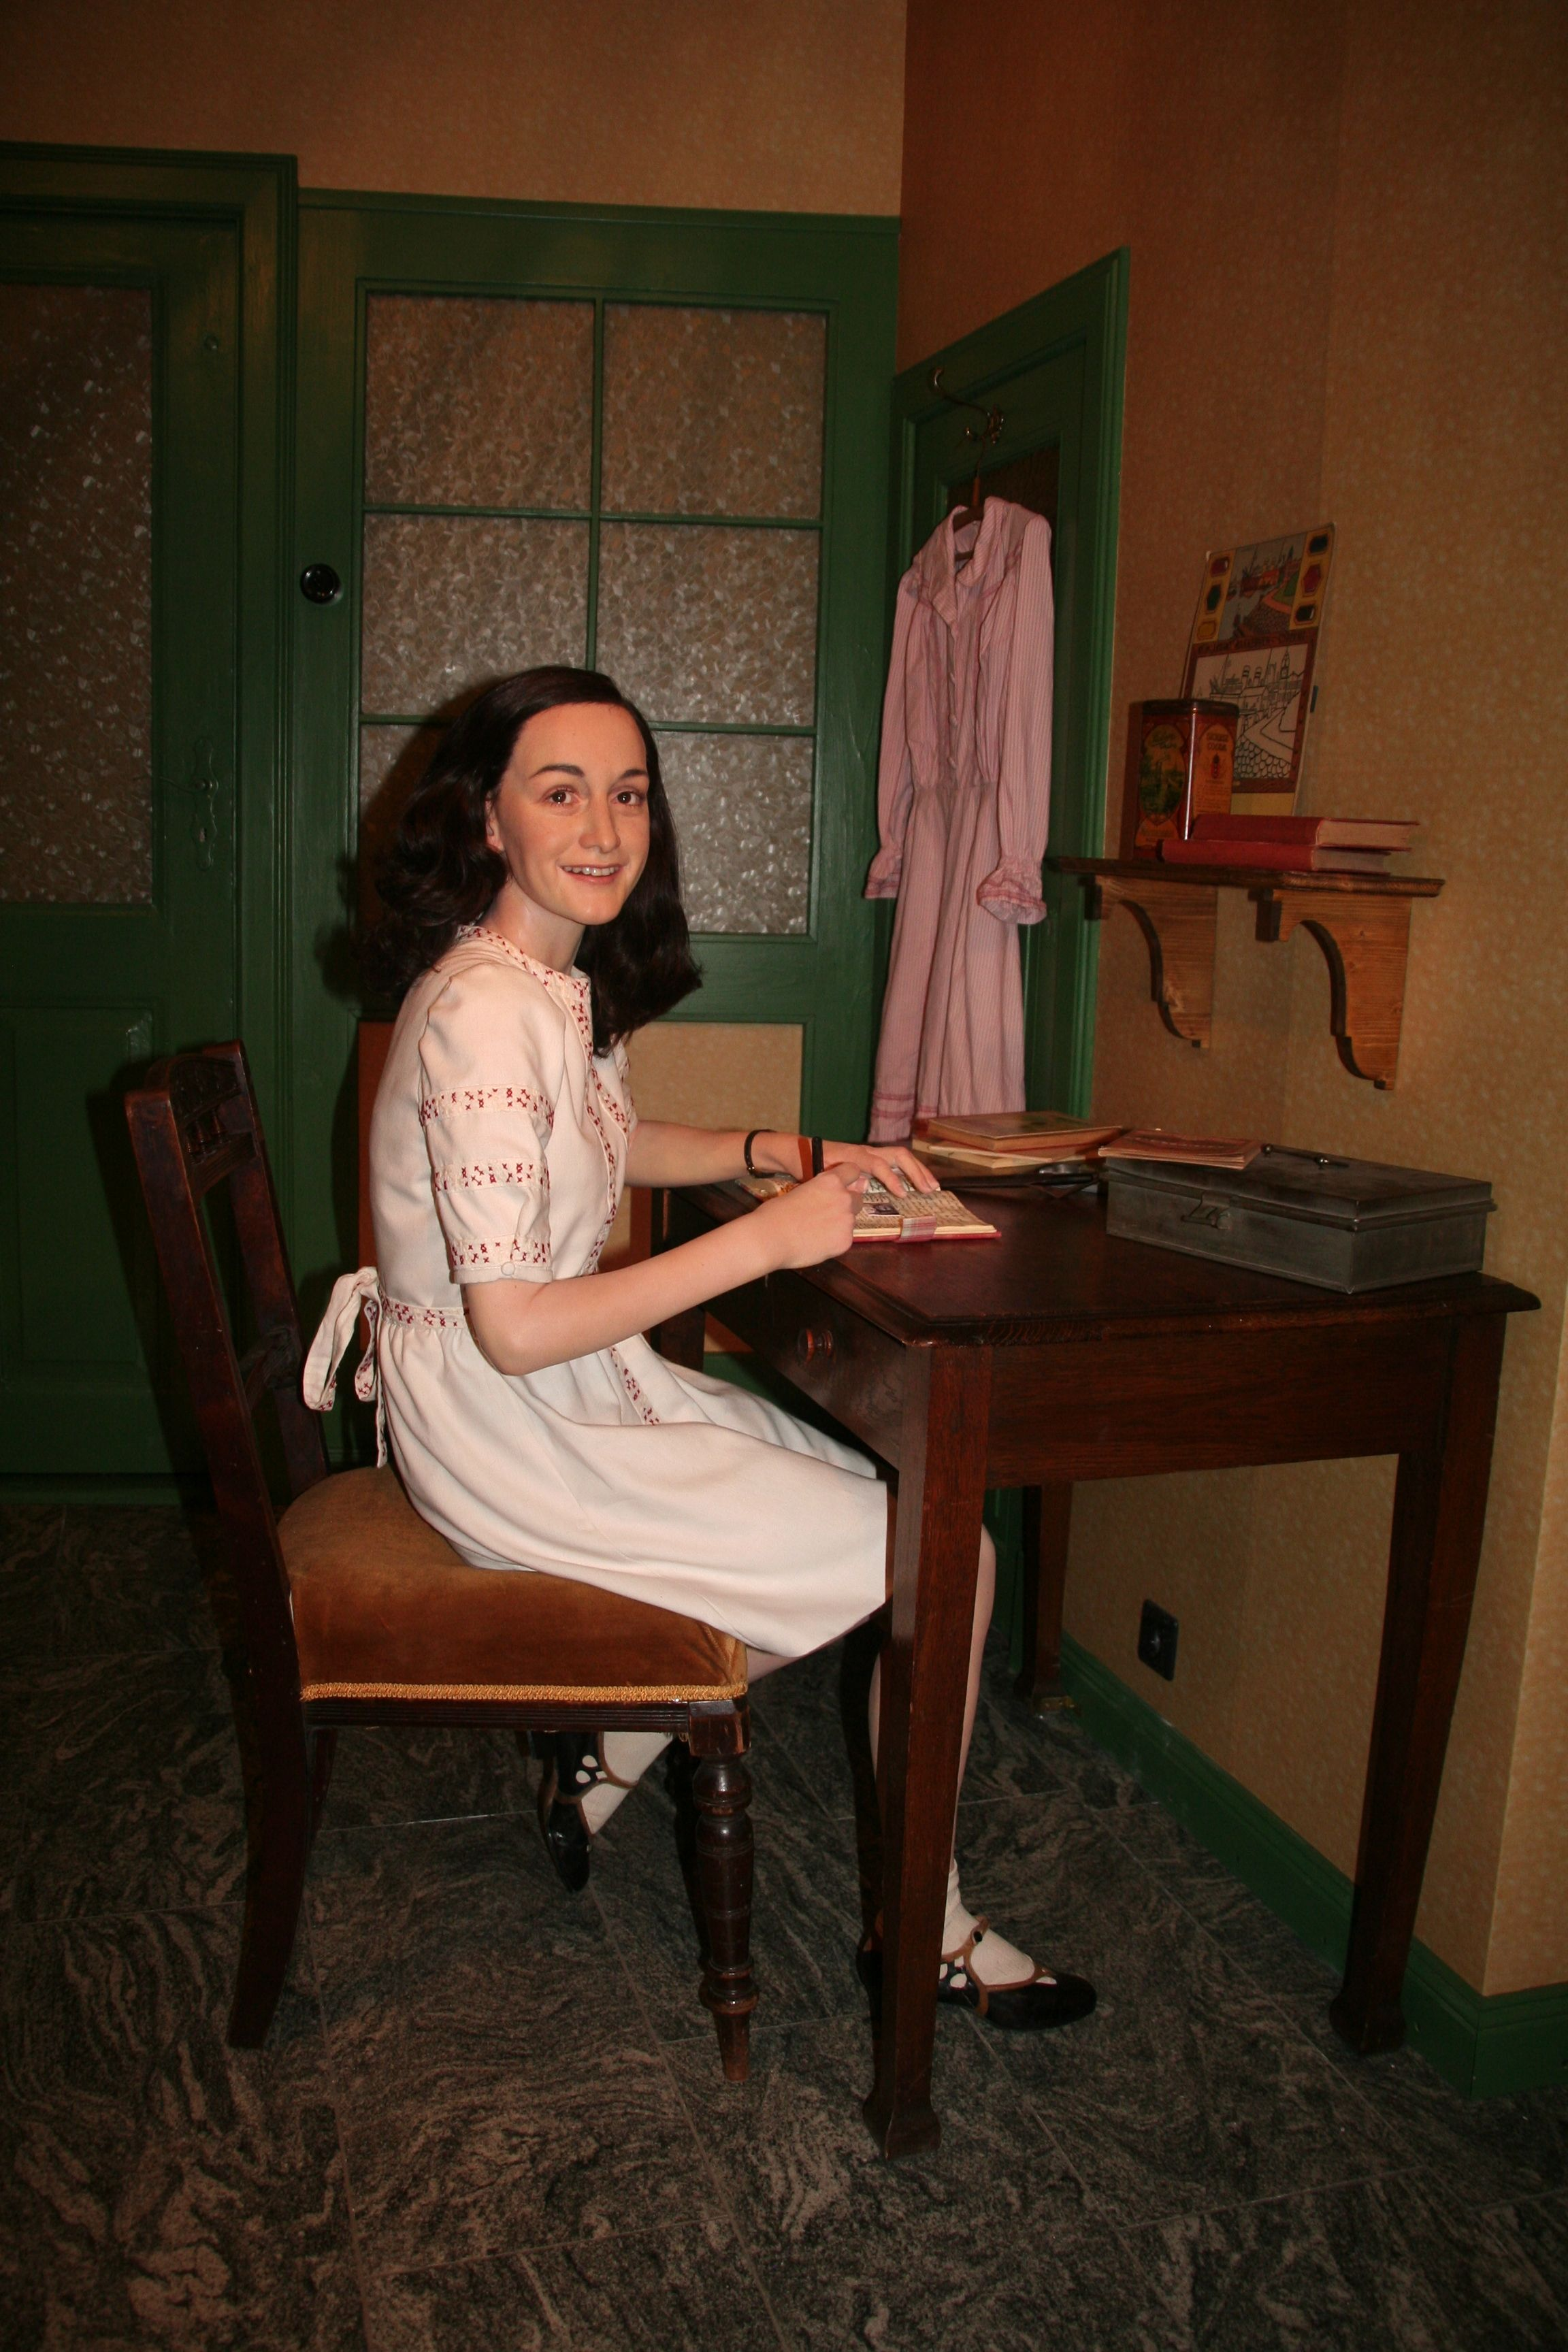 The Uncannily Lifelike Wax Form Of Anne Frank In Madame